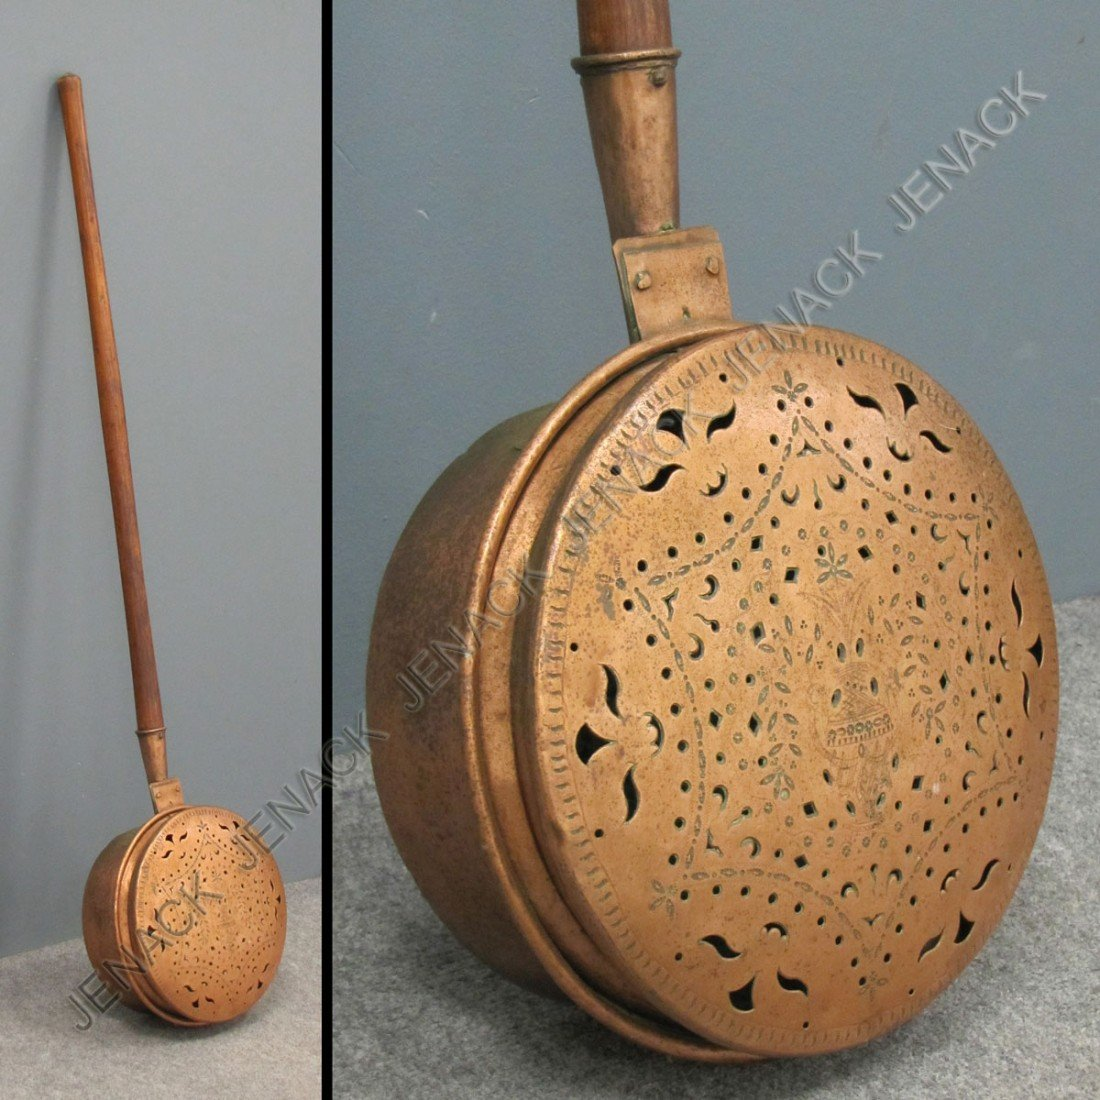 13: ENGLISH PIERCED AND ENGRAVED COPPER BED WARMER